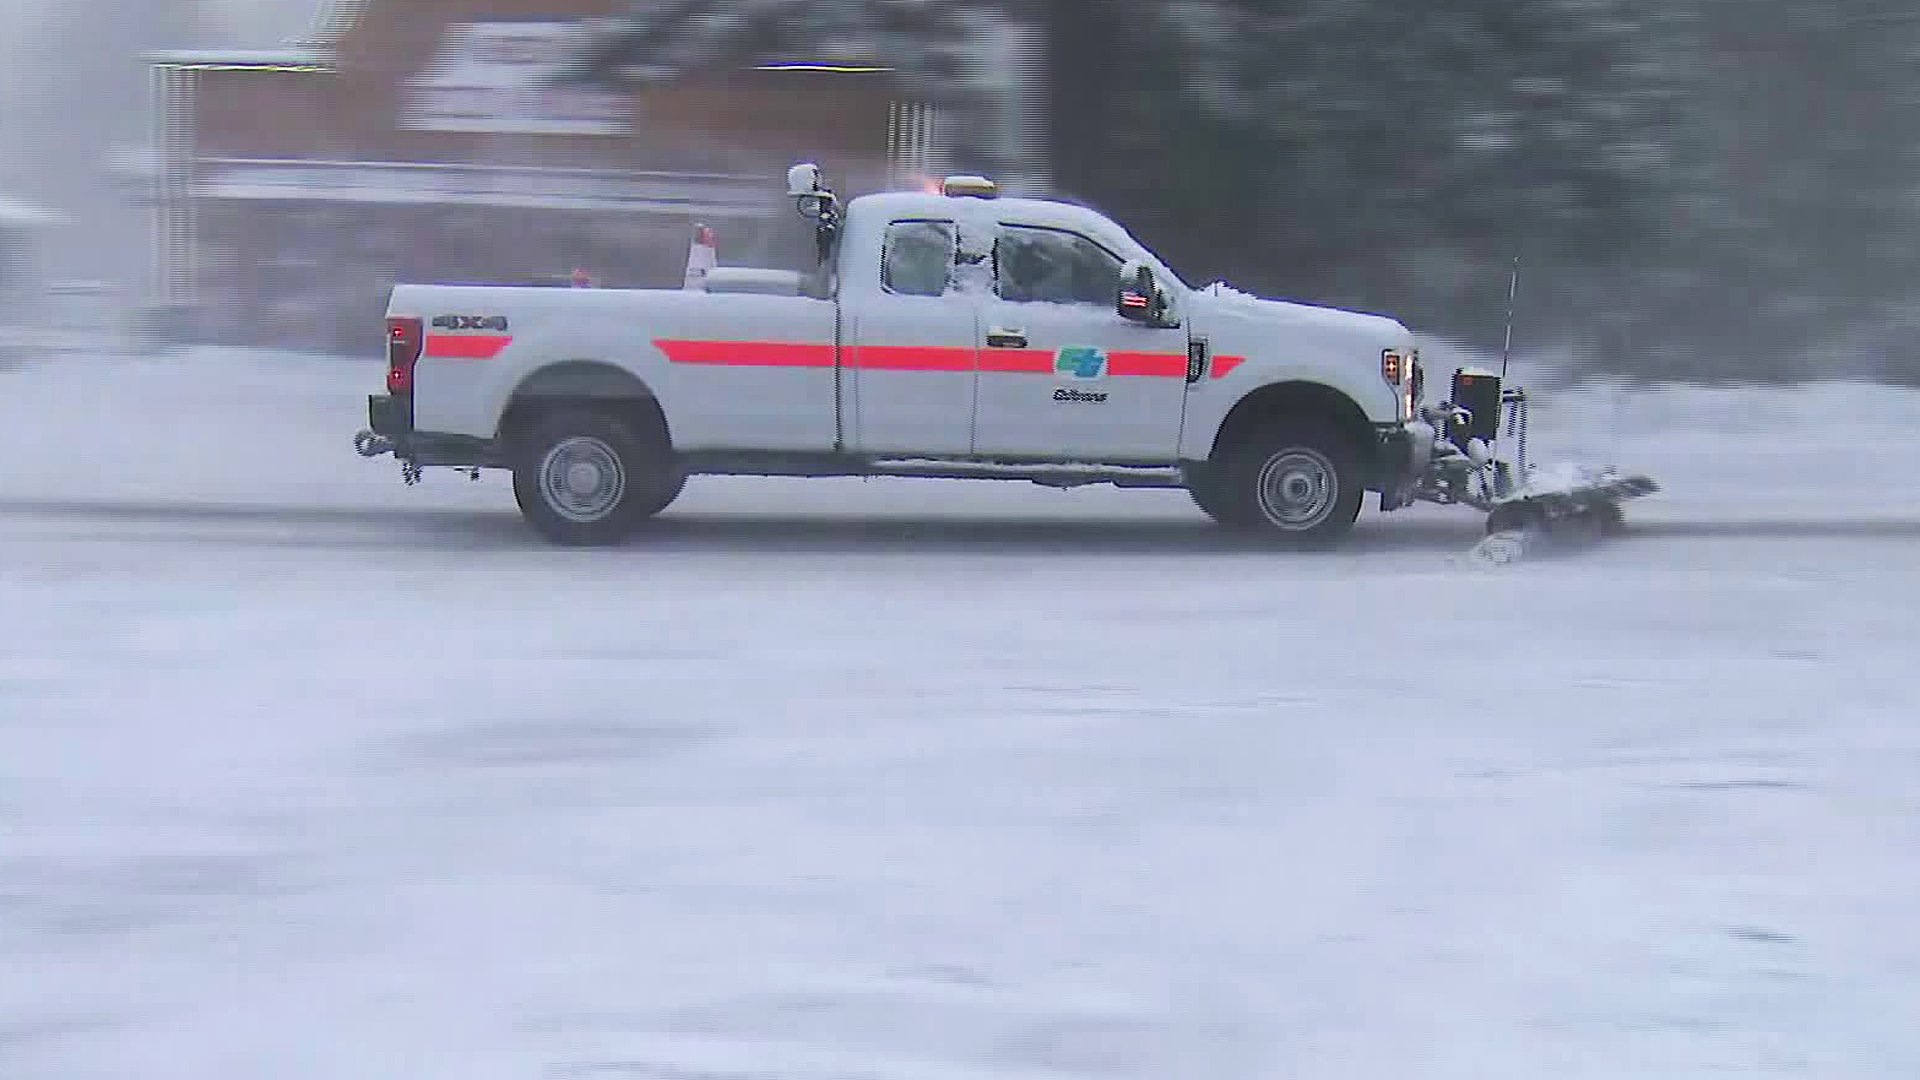 A truck plows the icy roads in Running Springs on March 2, 2020. (KTLA)